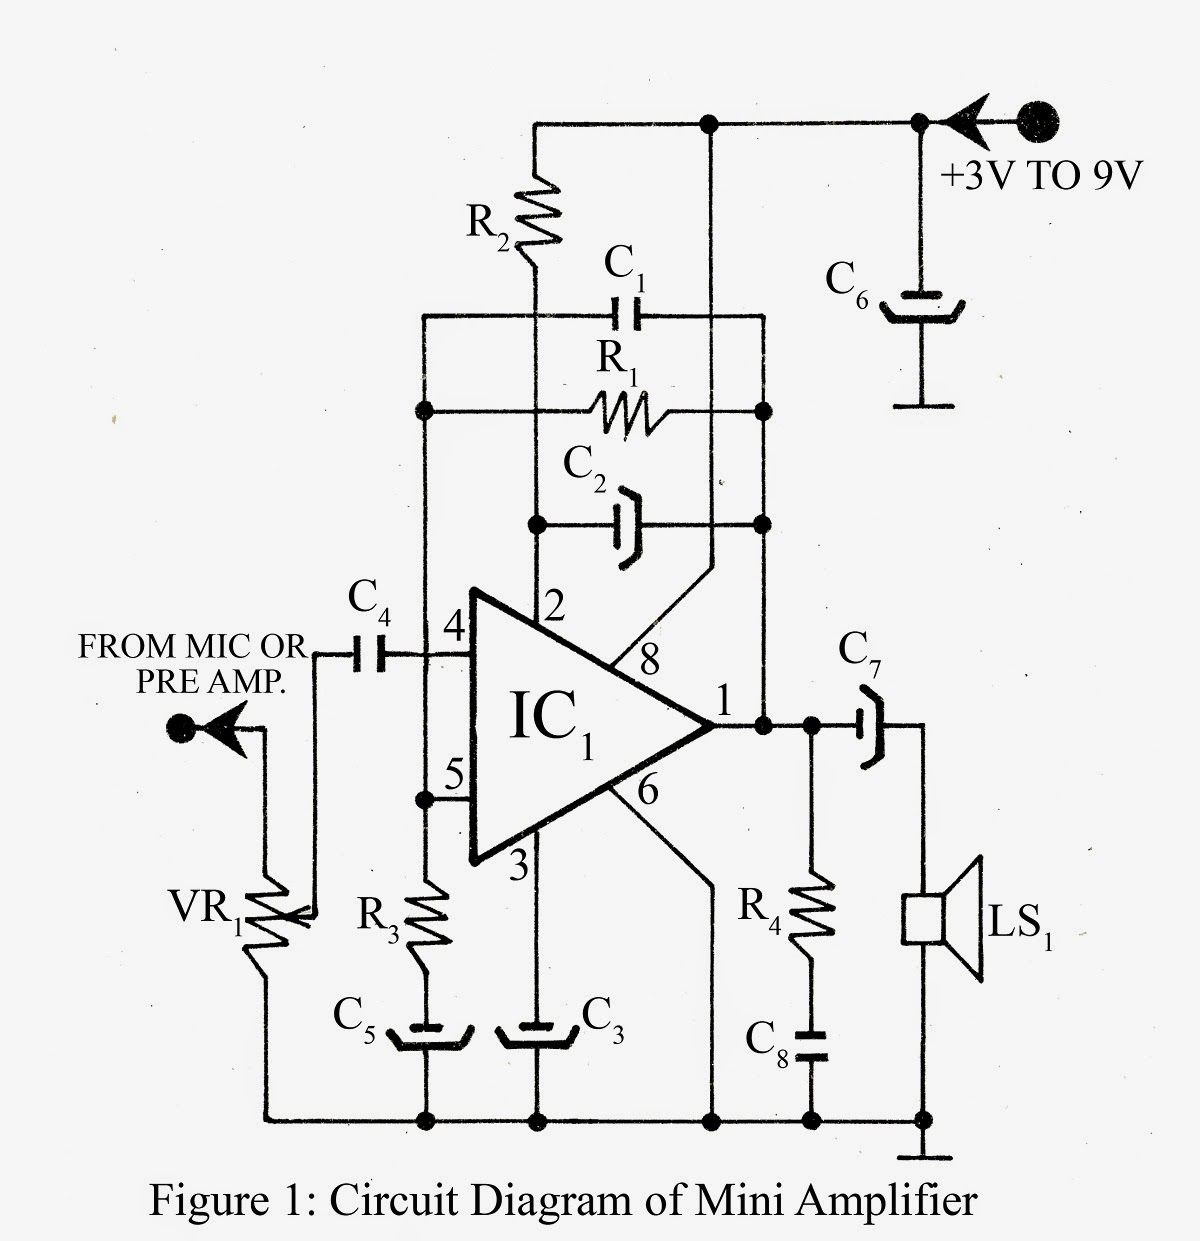 dld mini projects circuit diagram lima bean seed amplifier electronic ic